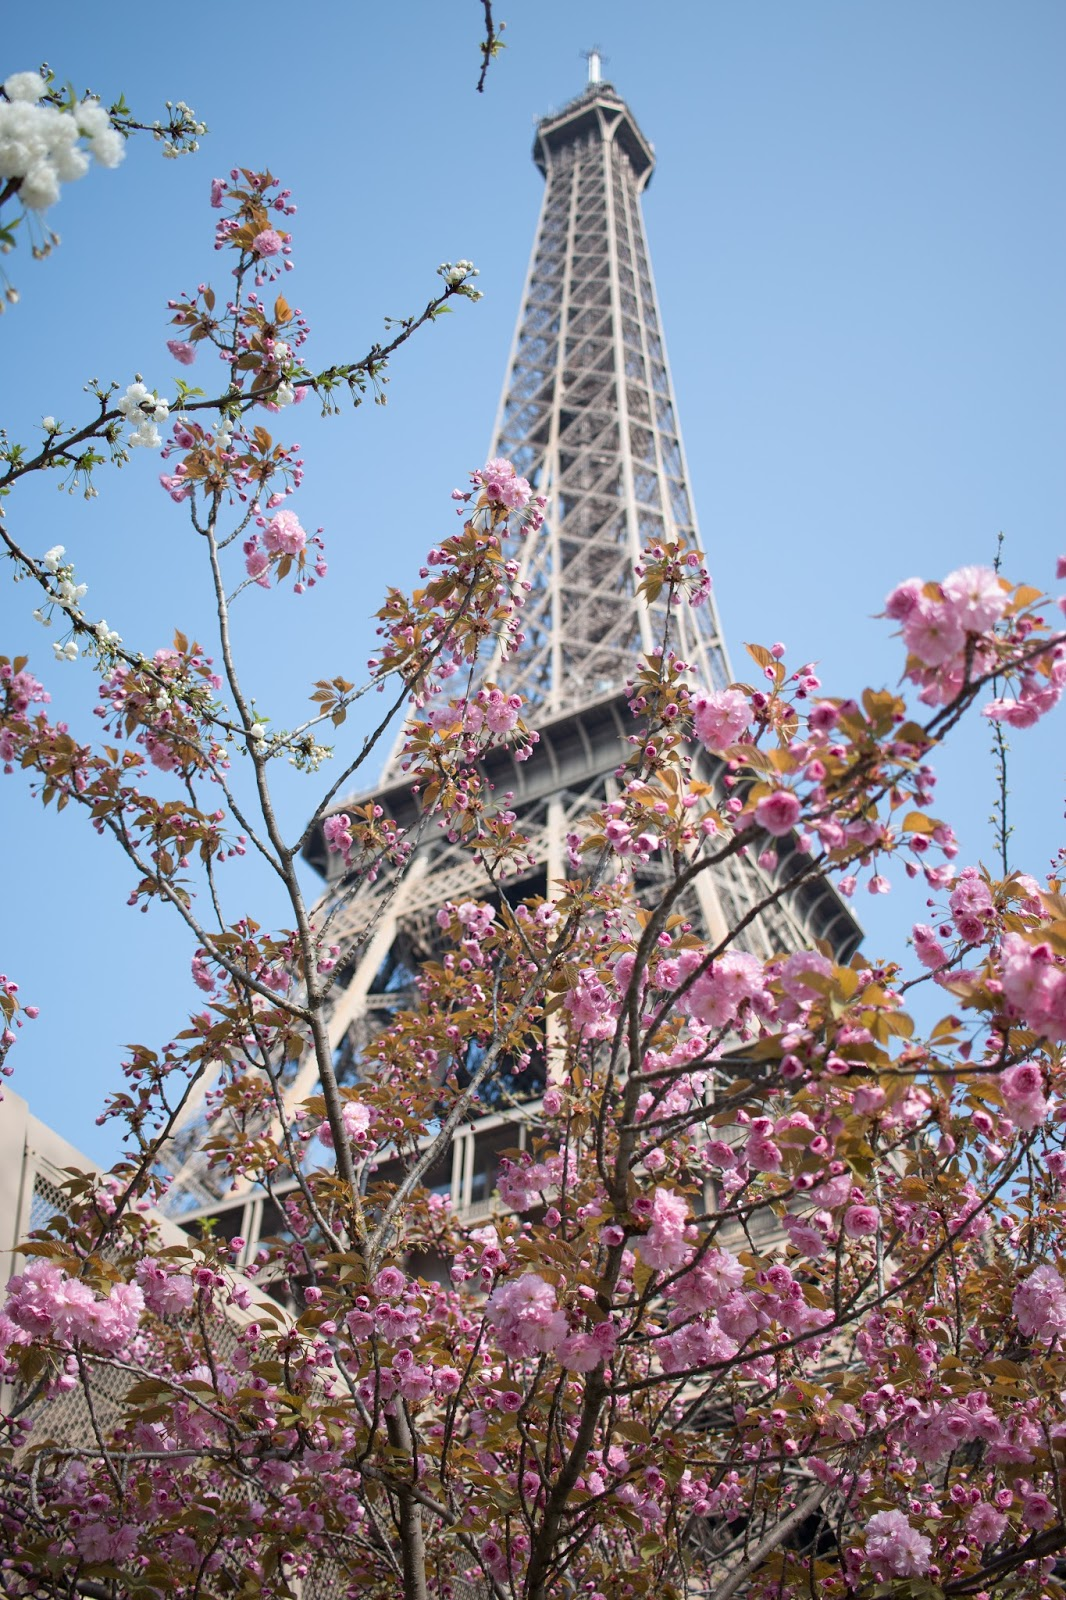 Travel: Visiting Paris in spring